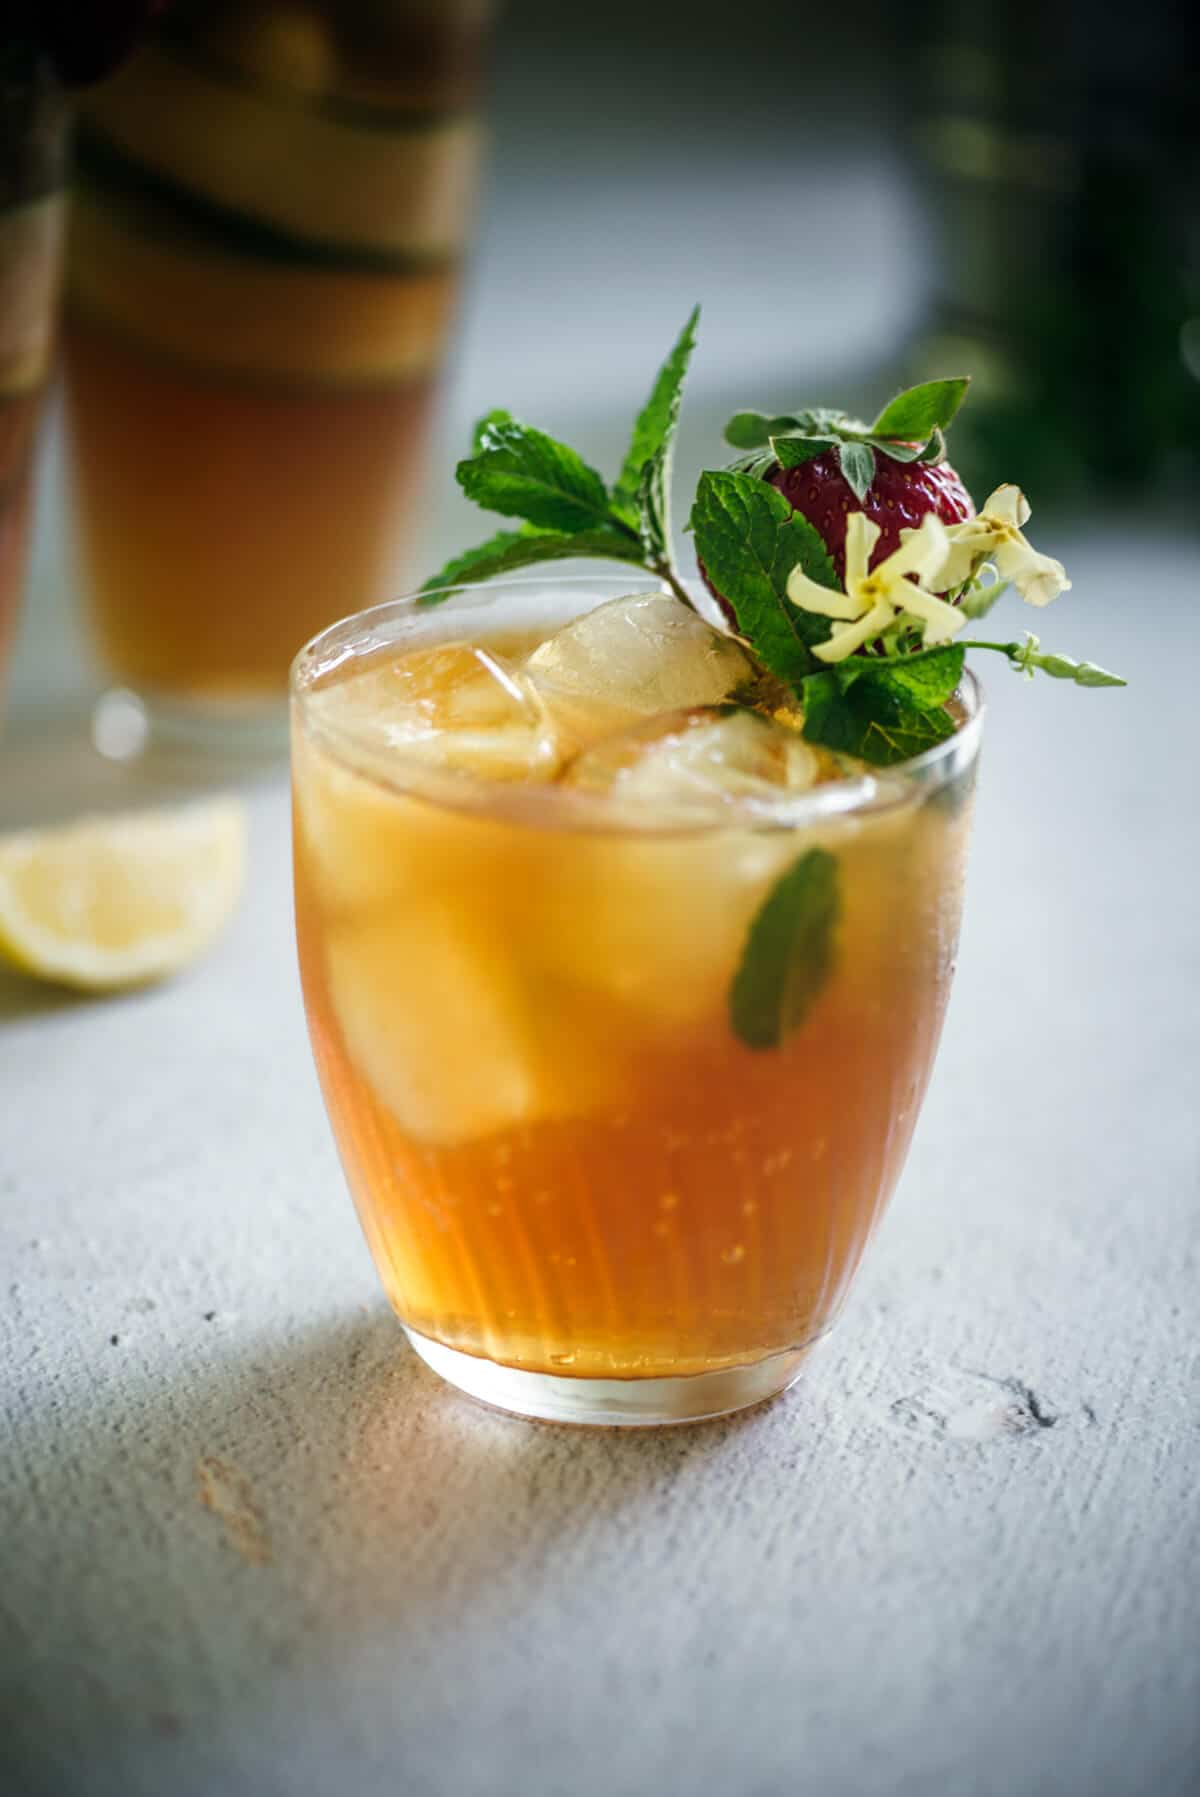 Pimms No 1 Cup Cocktail